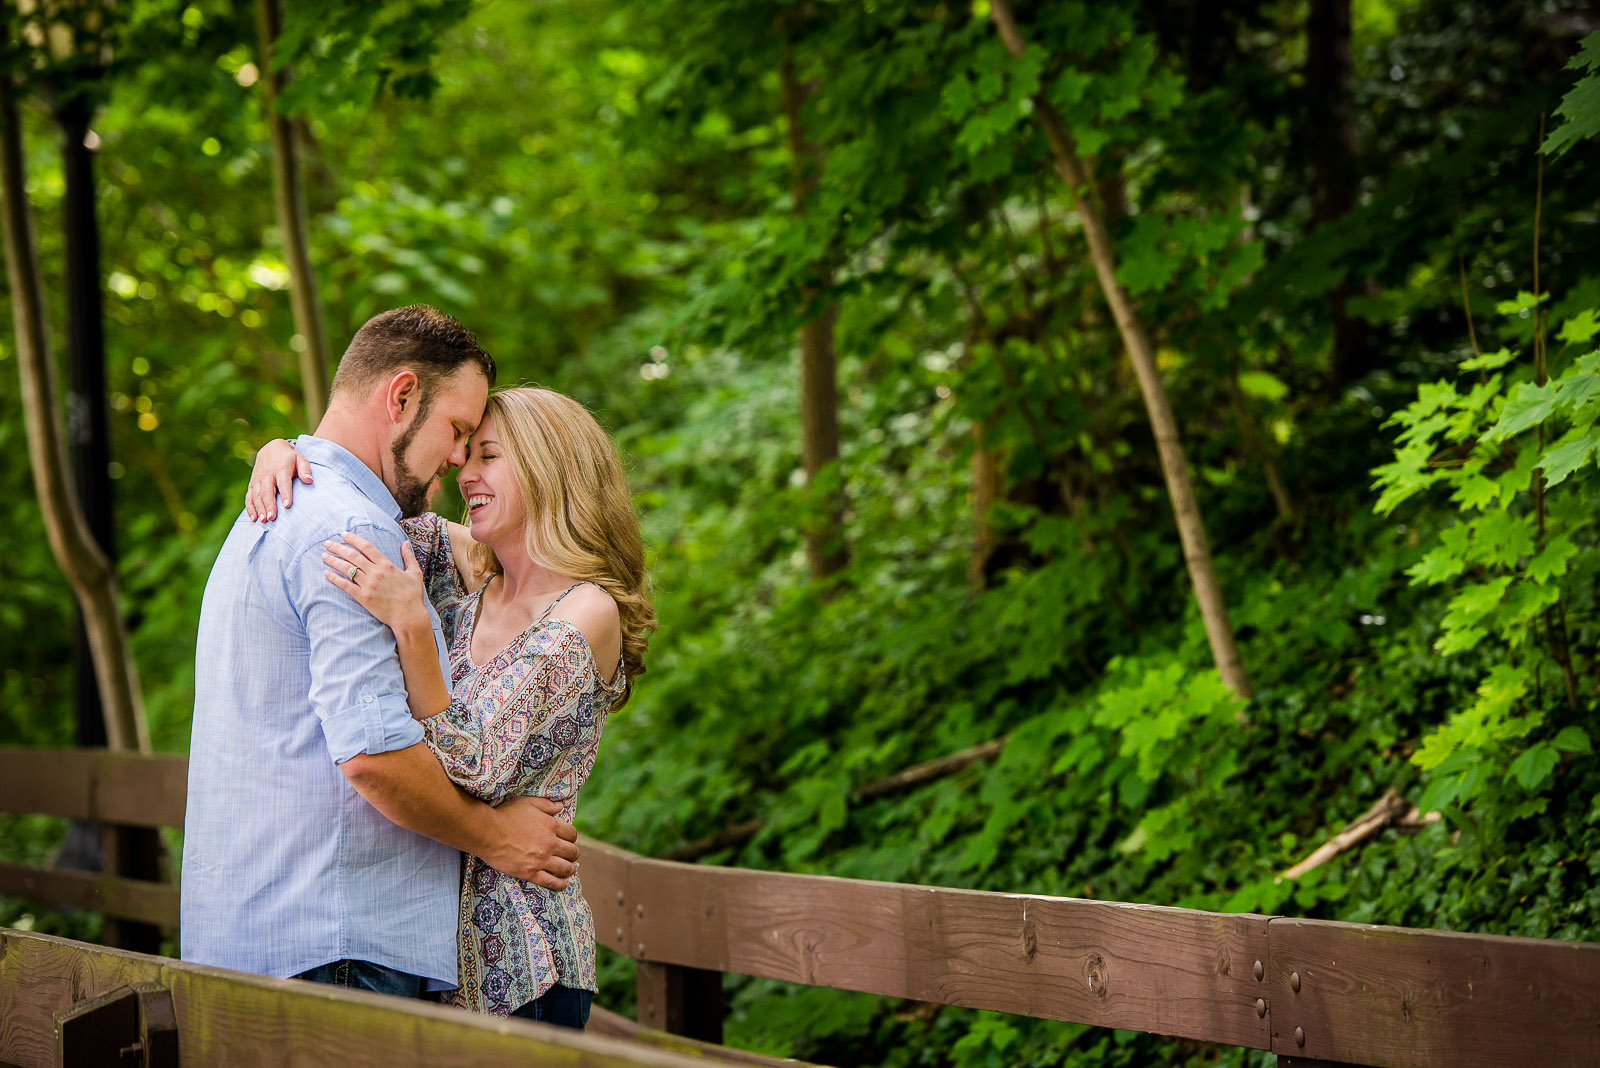 Eric_and_Christy_Photography_Blog_2017_Best_Engagement-10